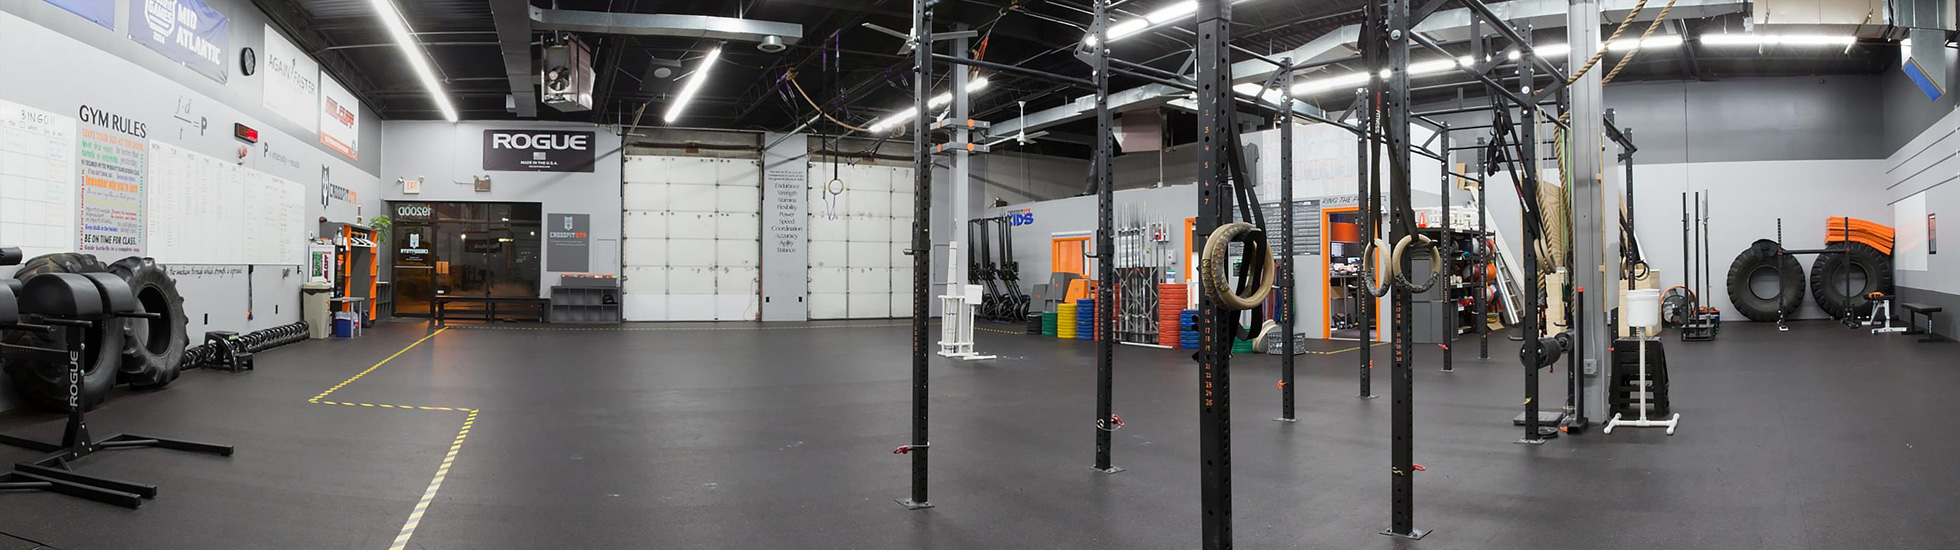 Why Heretic CrossFit Is Ranked One Of The Best Gyms In Gaithersburg MD